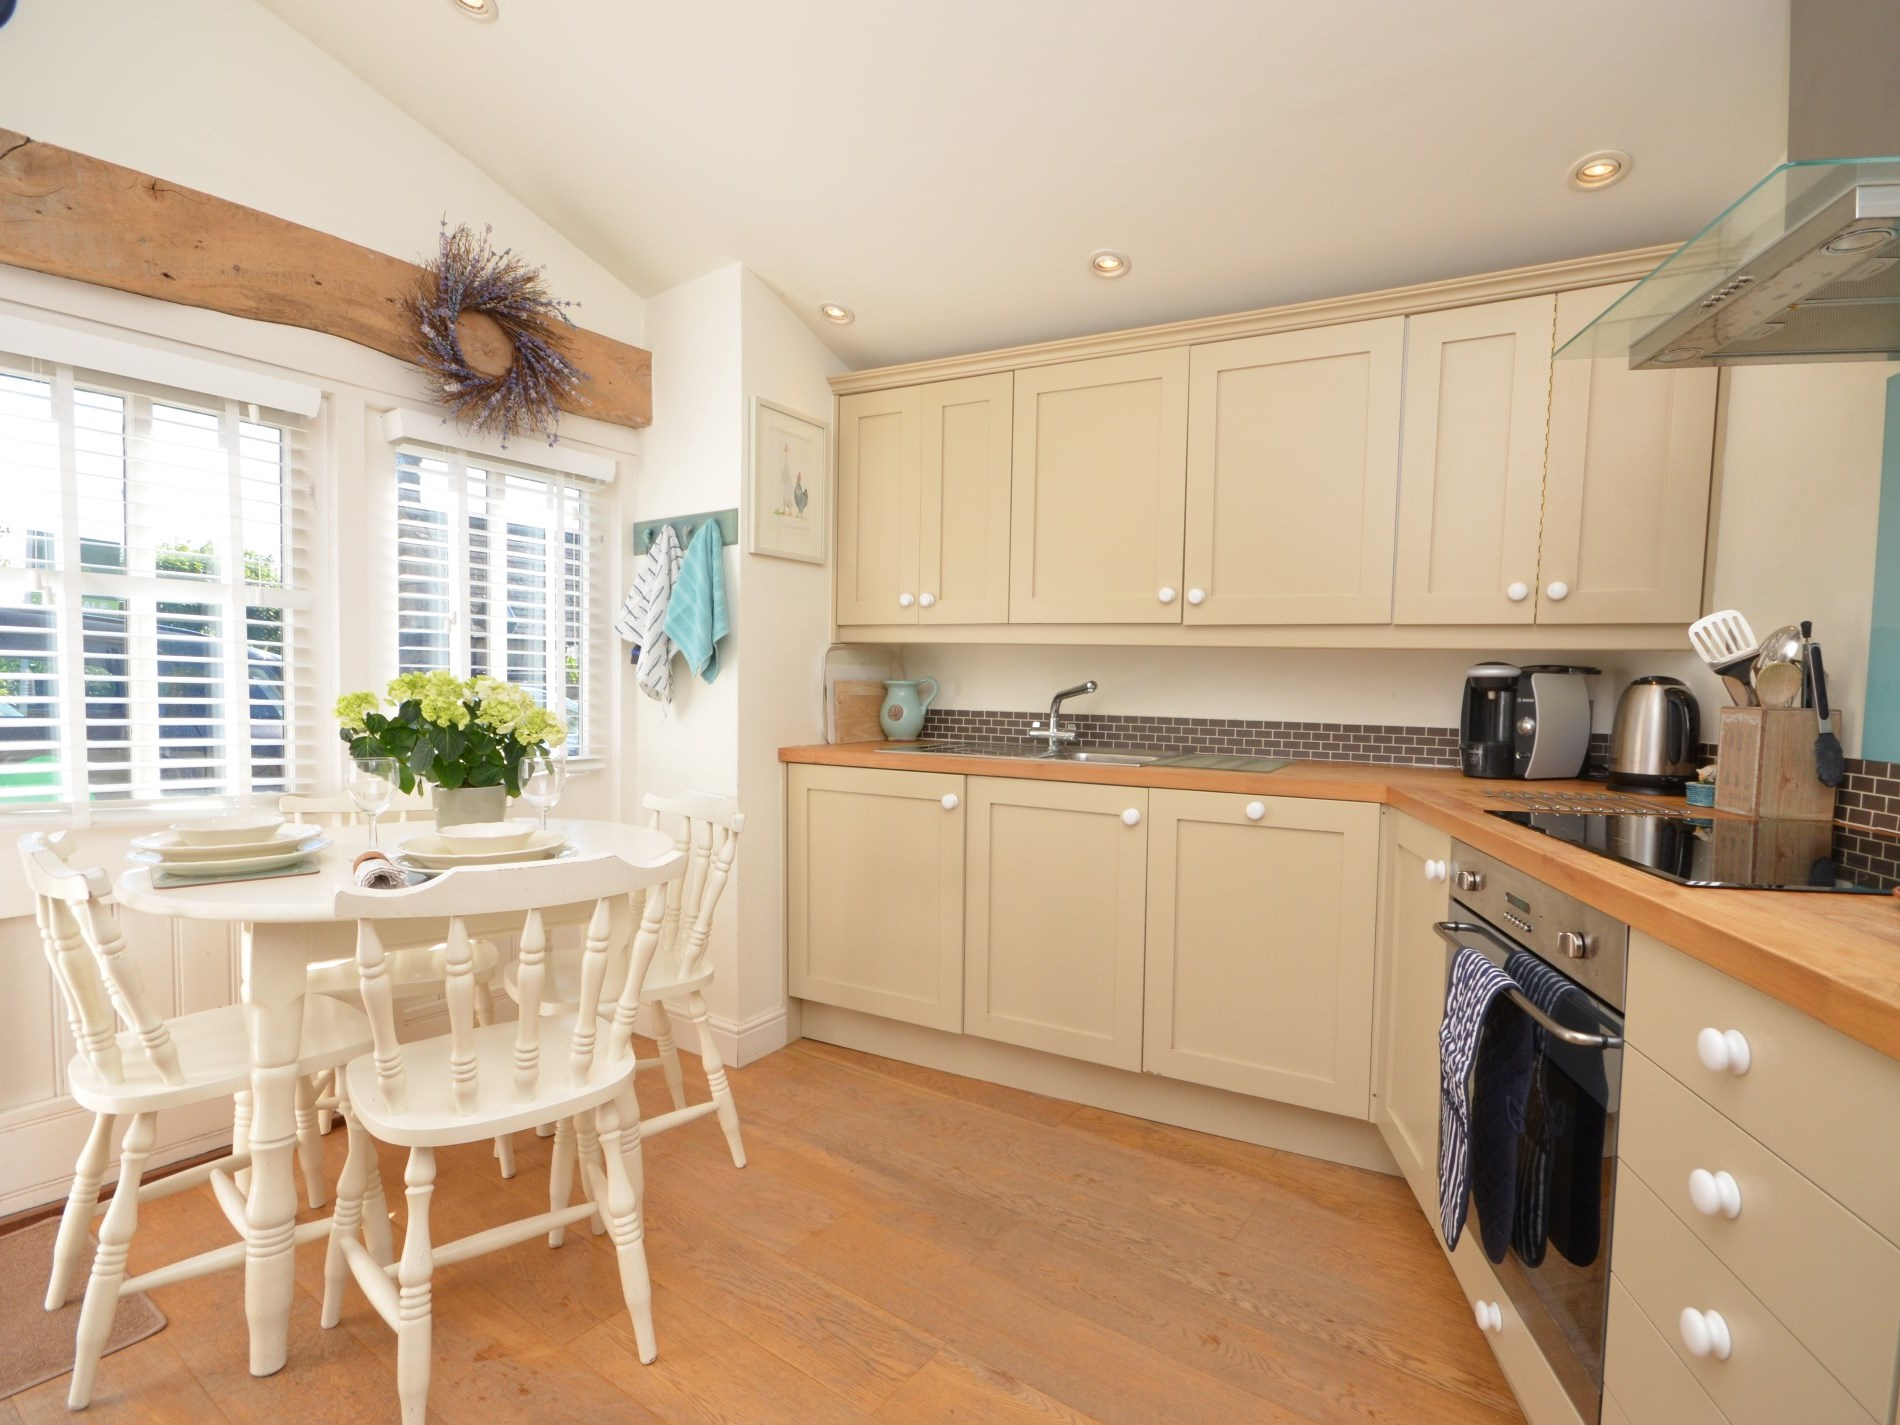 Lovely open plan kitchen and dining area